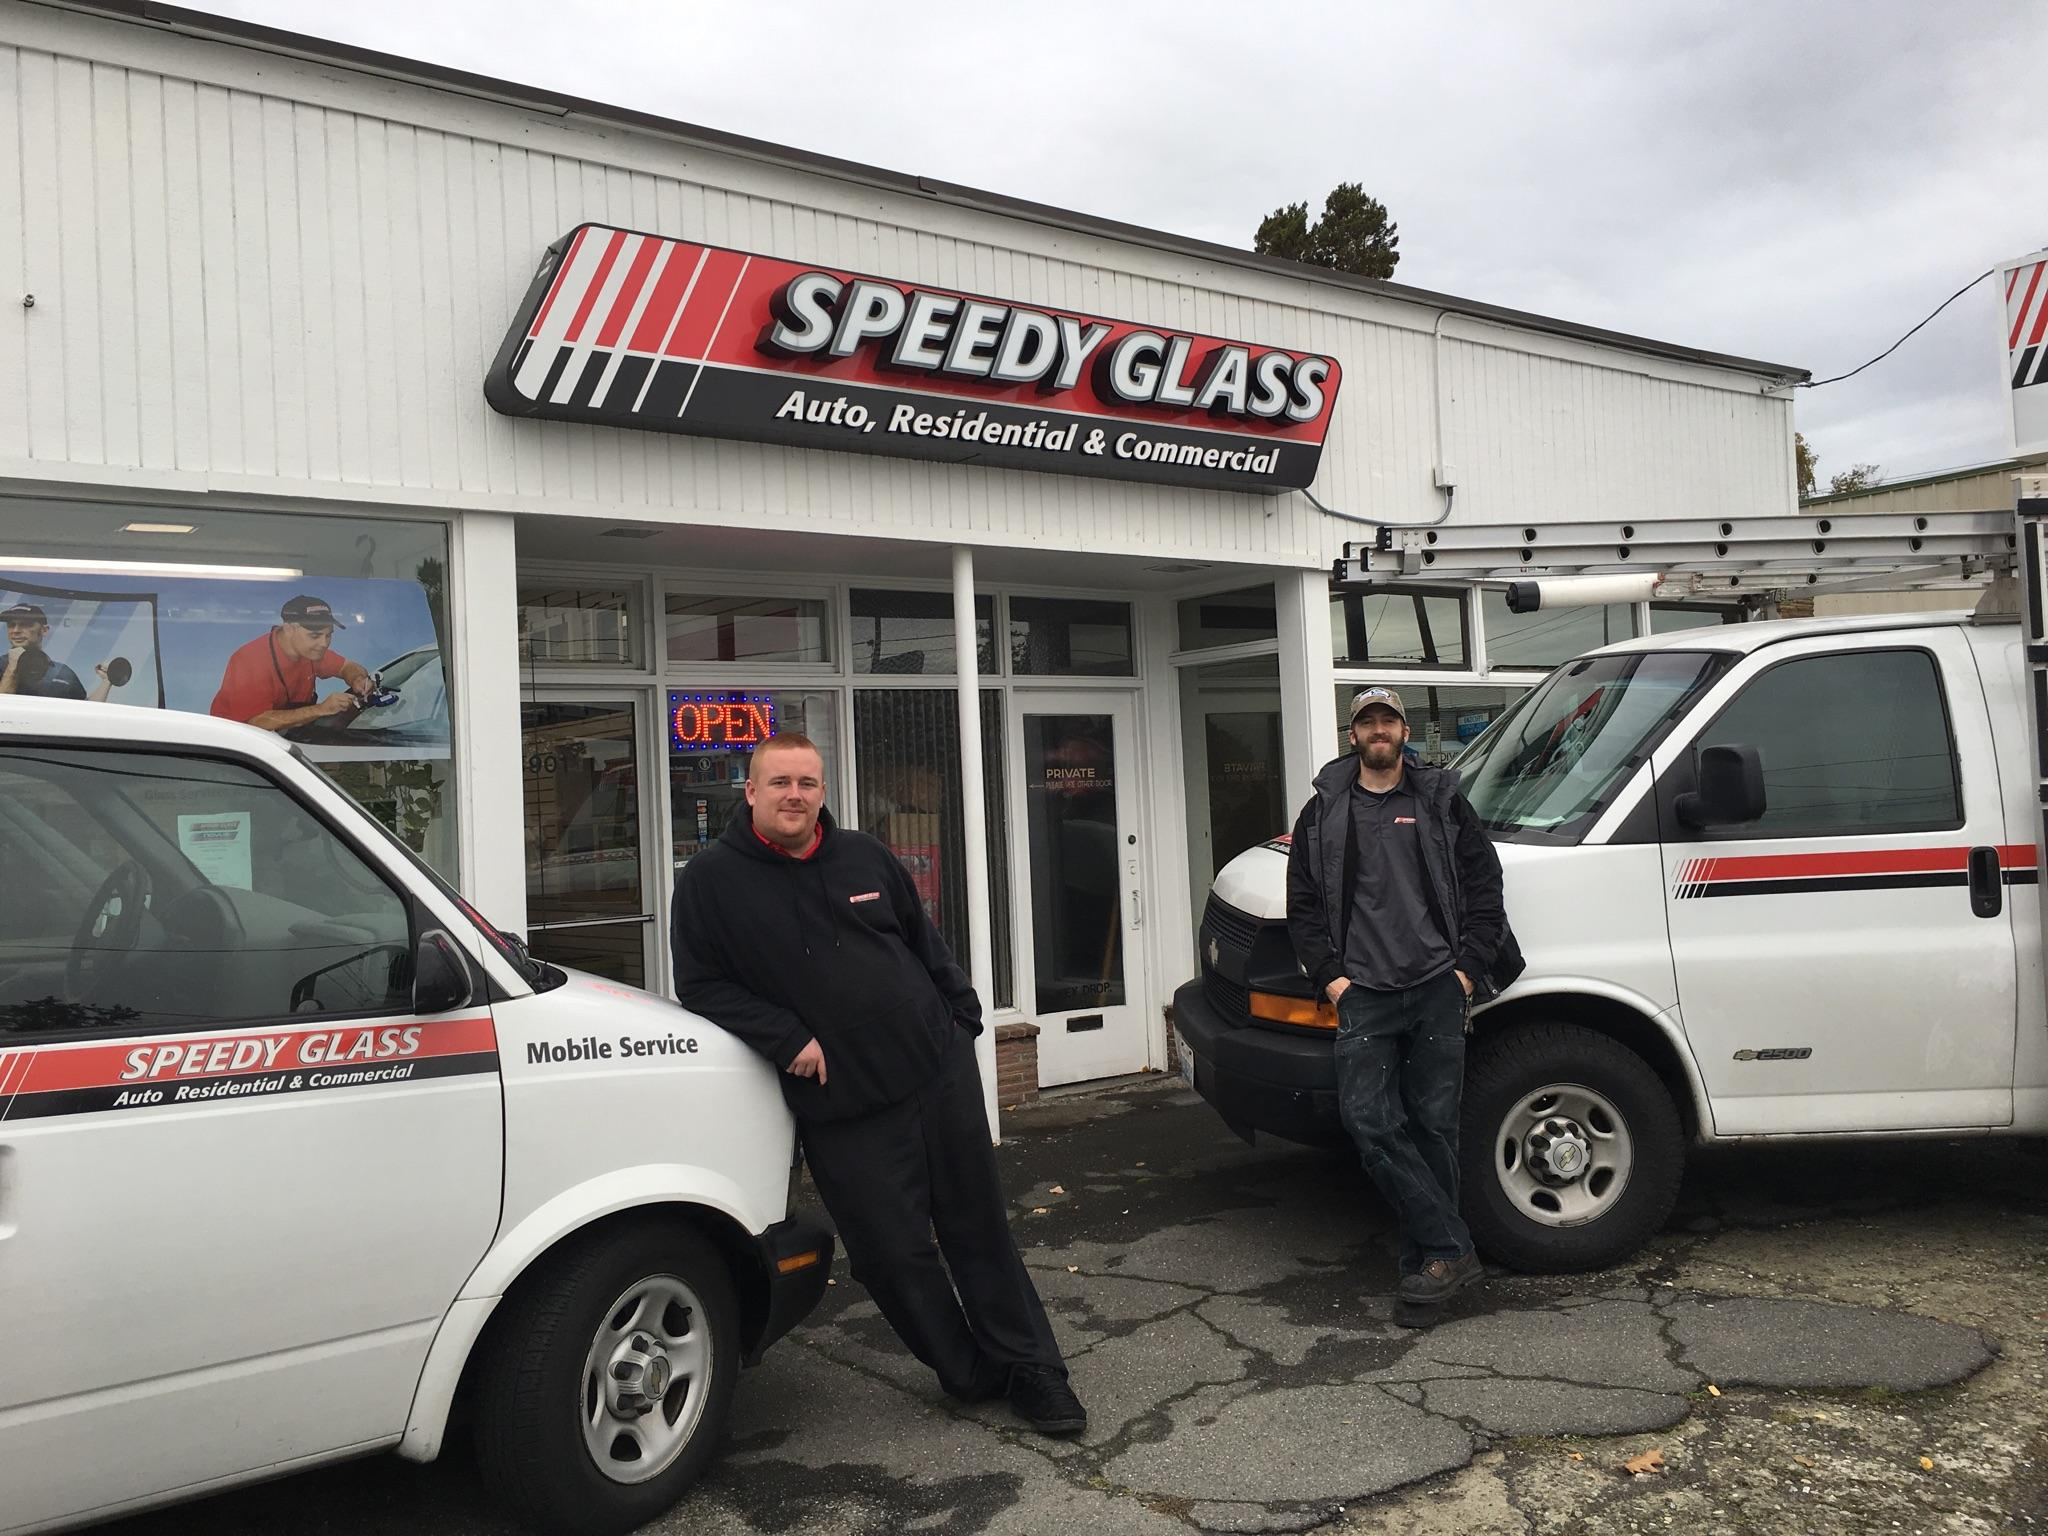 Shane Andersen on the left has worked at Speedy Glass for 3 years he is our inshop auto glass technician and Tim Moore on the right has been with us for 1 year this coming December and is our Glazier.